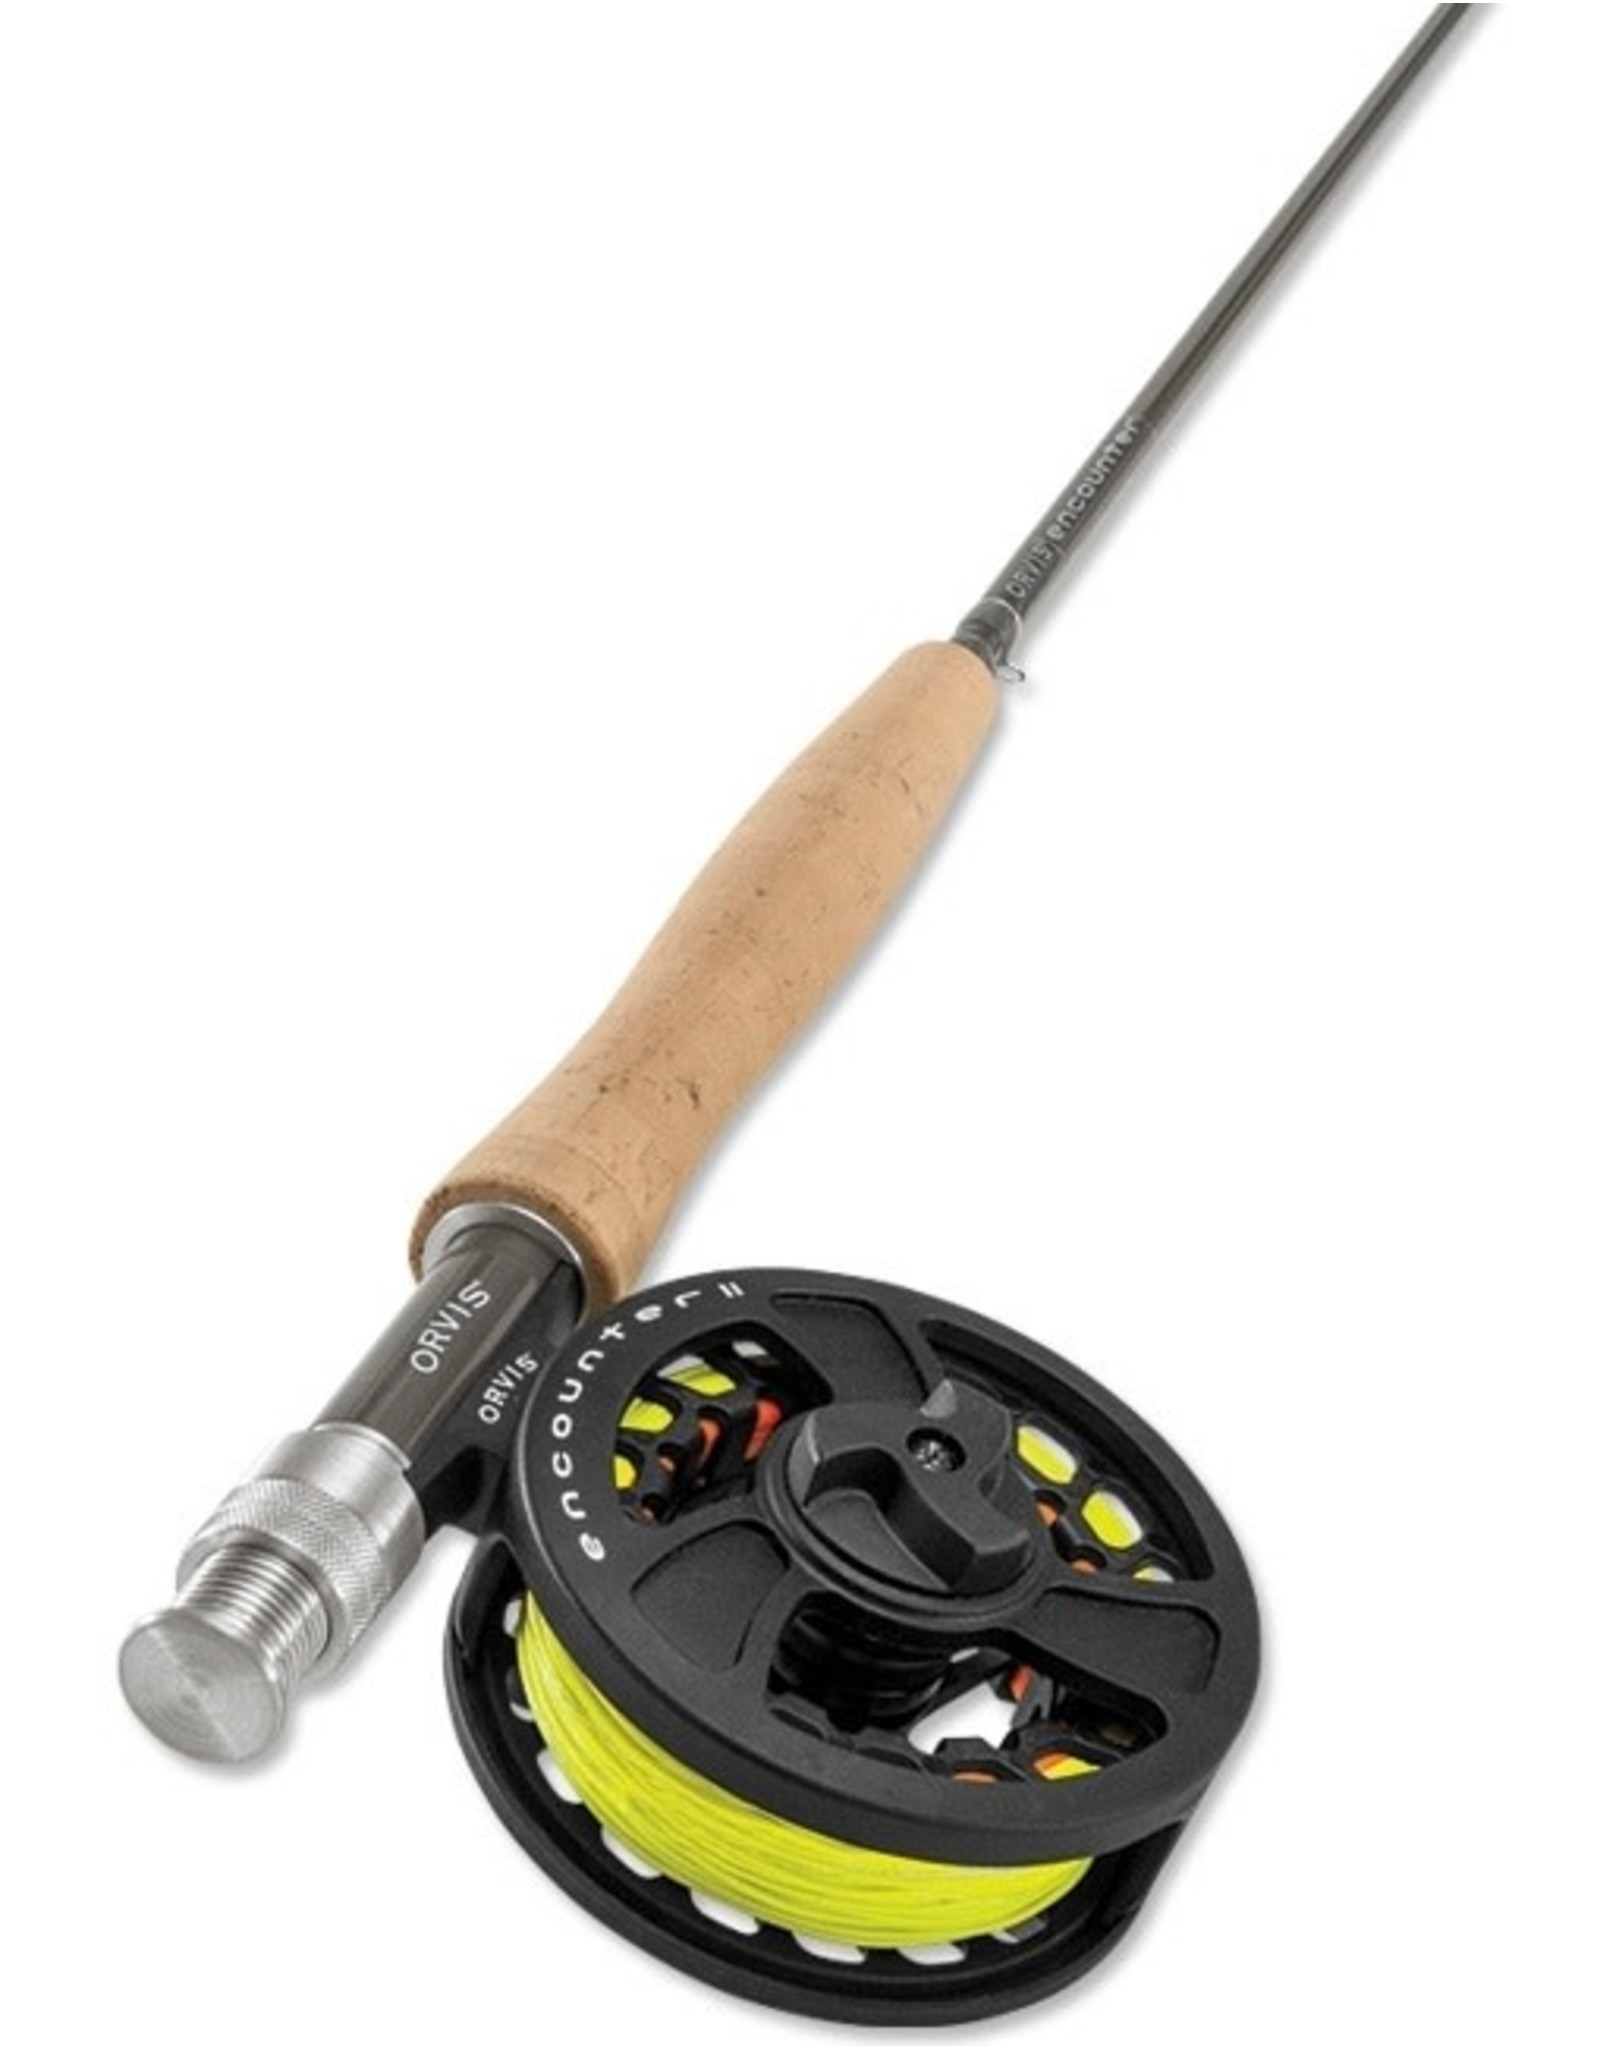 ORVIS ENCOUNTER 905-4 OUTFIT OTFIT